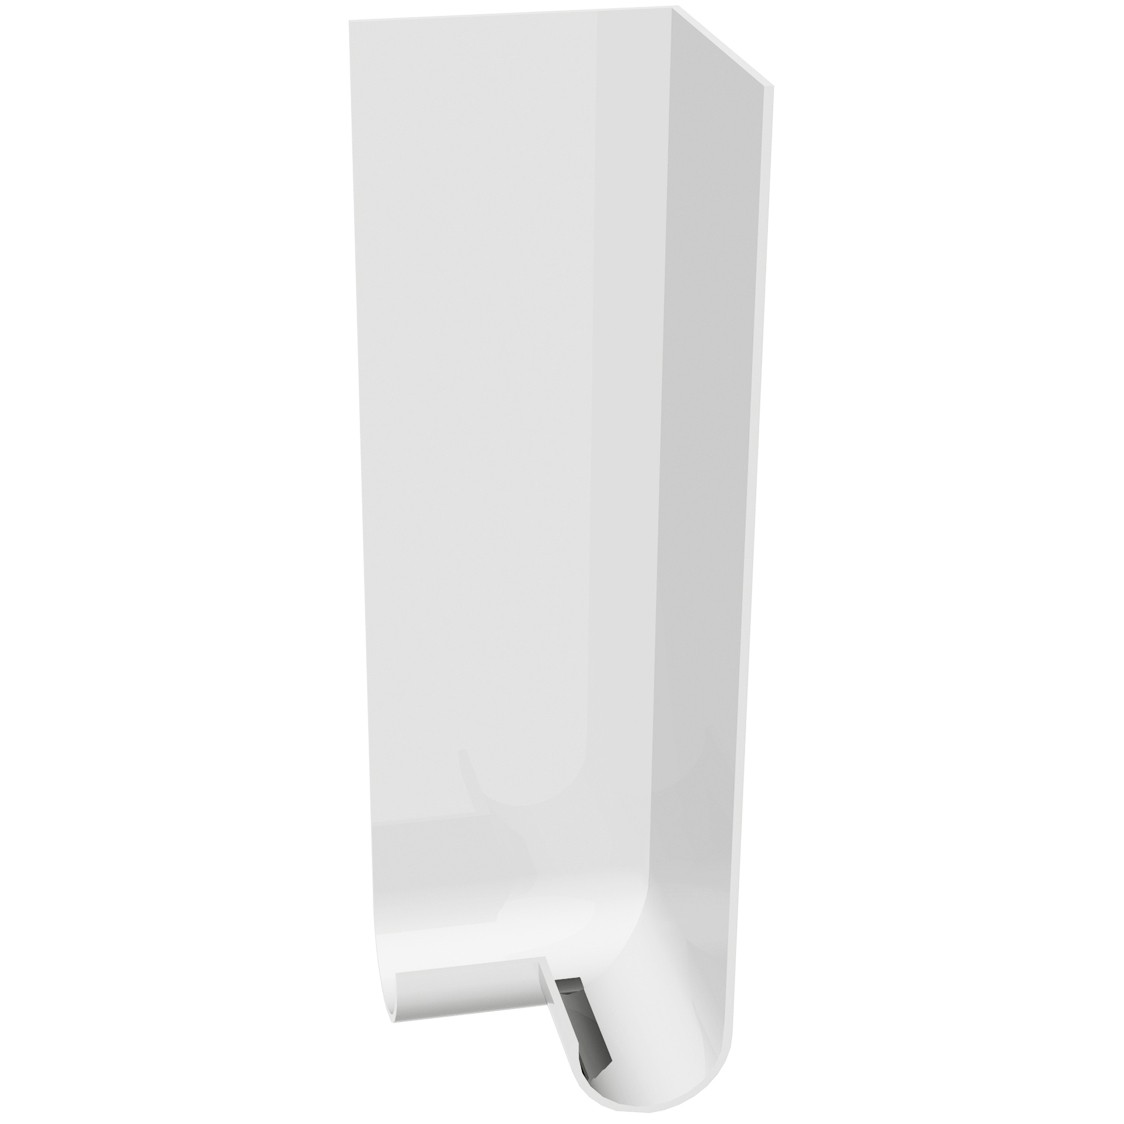 Freefoam Round Nose 18mm Fascia Board External Corner (Double) - White